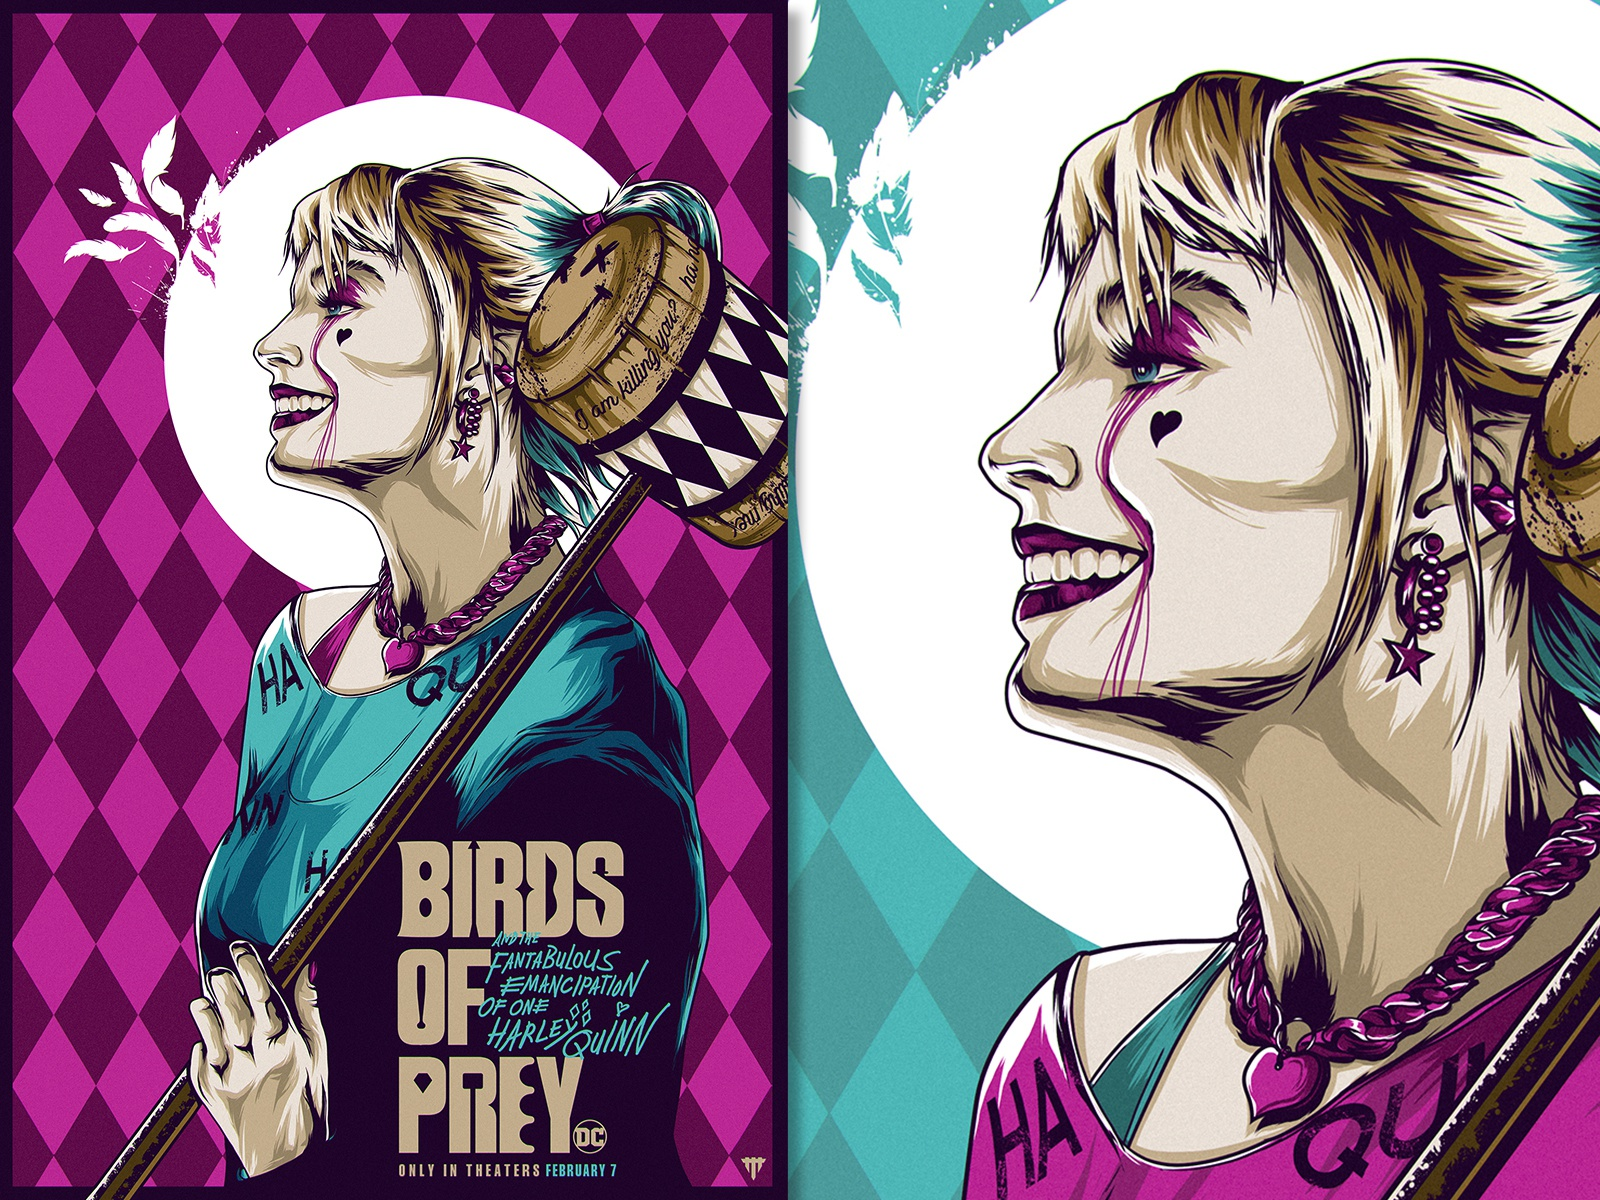 Birds Of Prey Illustrated Poster By Jhony Caballero On Dribbble